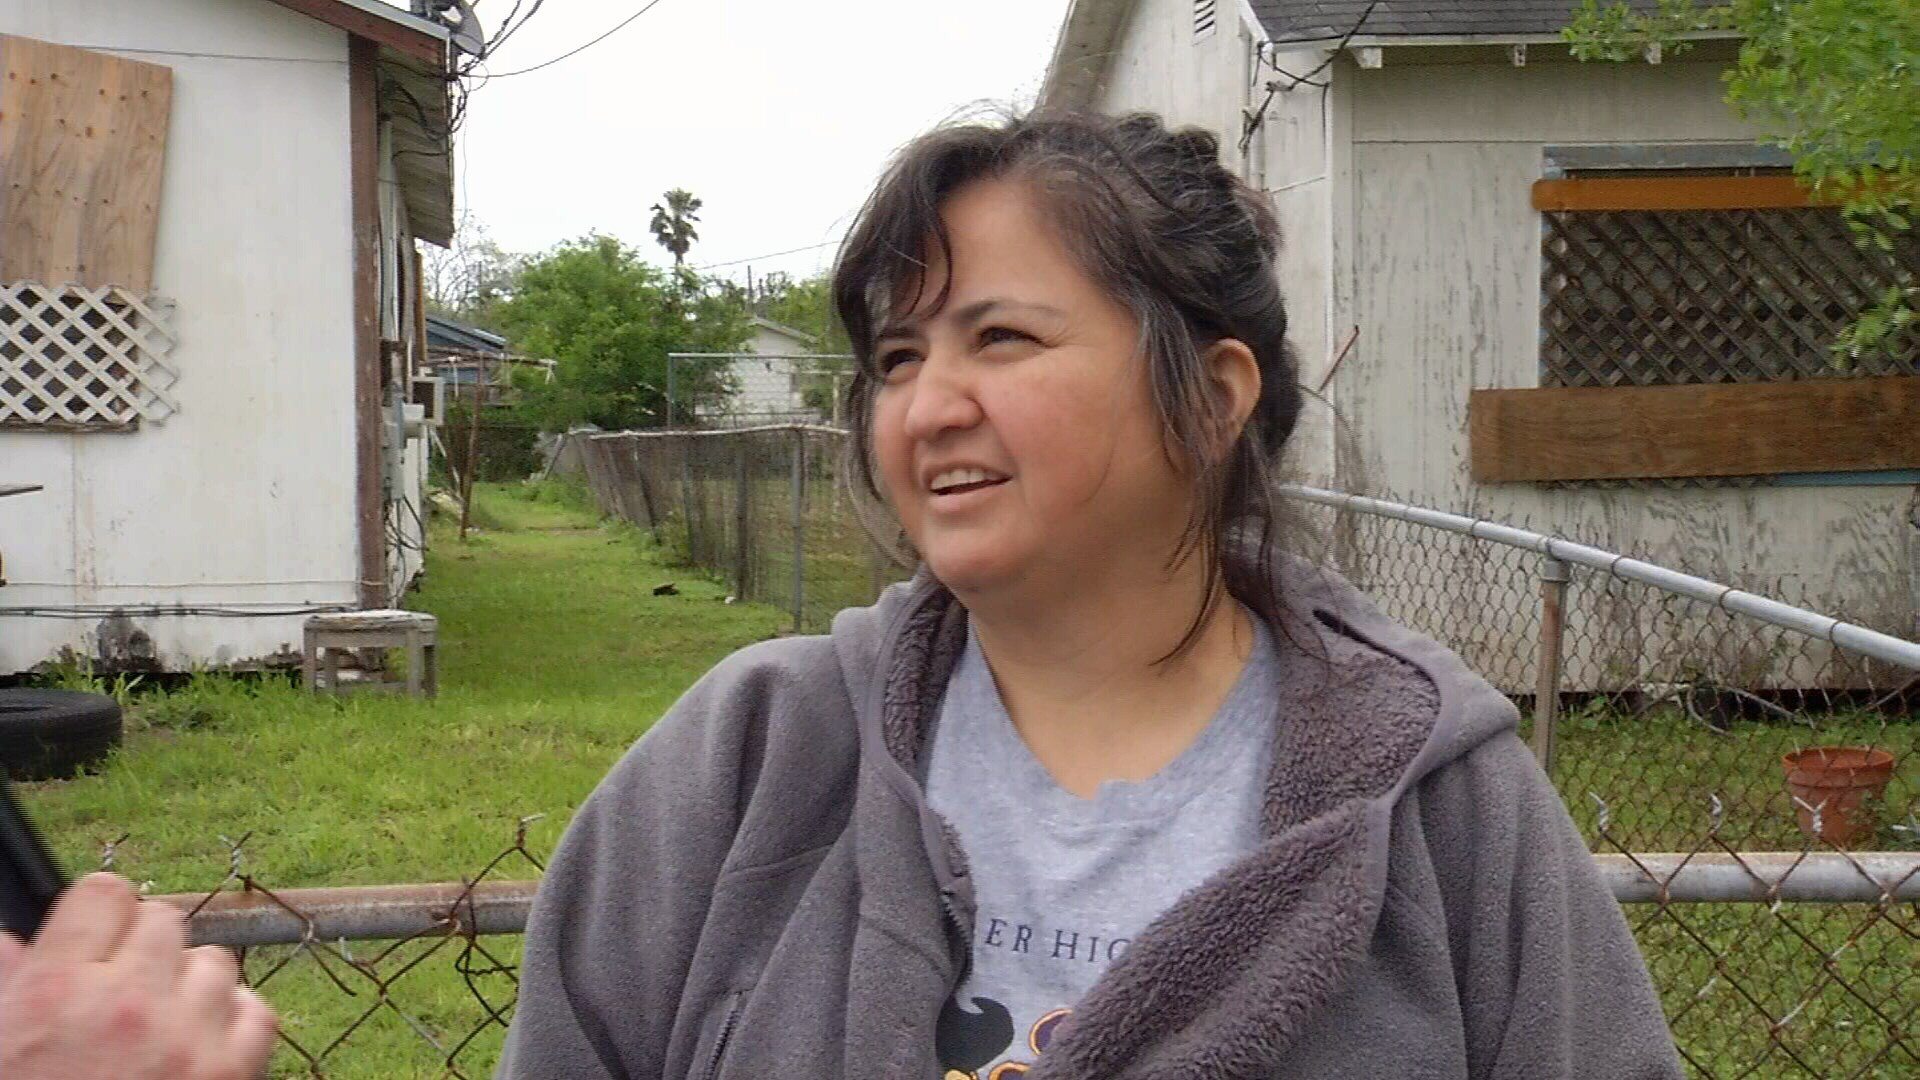 Resident Gloria Cuervo said packs of 10 to 12 aggressive dogs often roam her neighborhood.